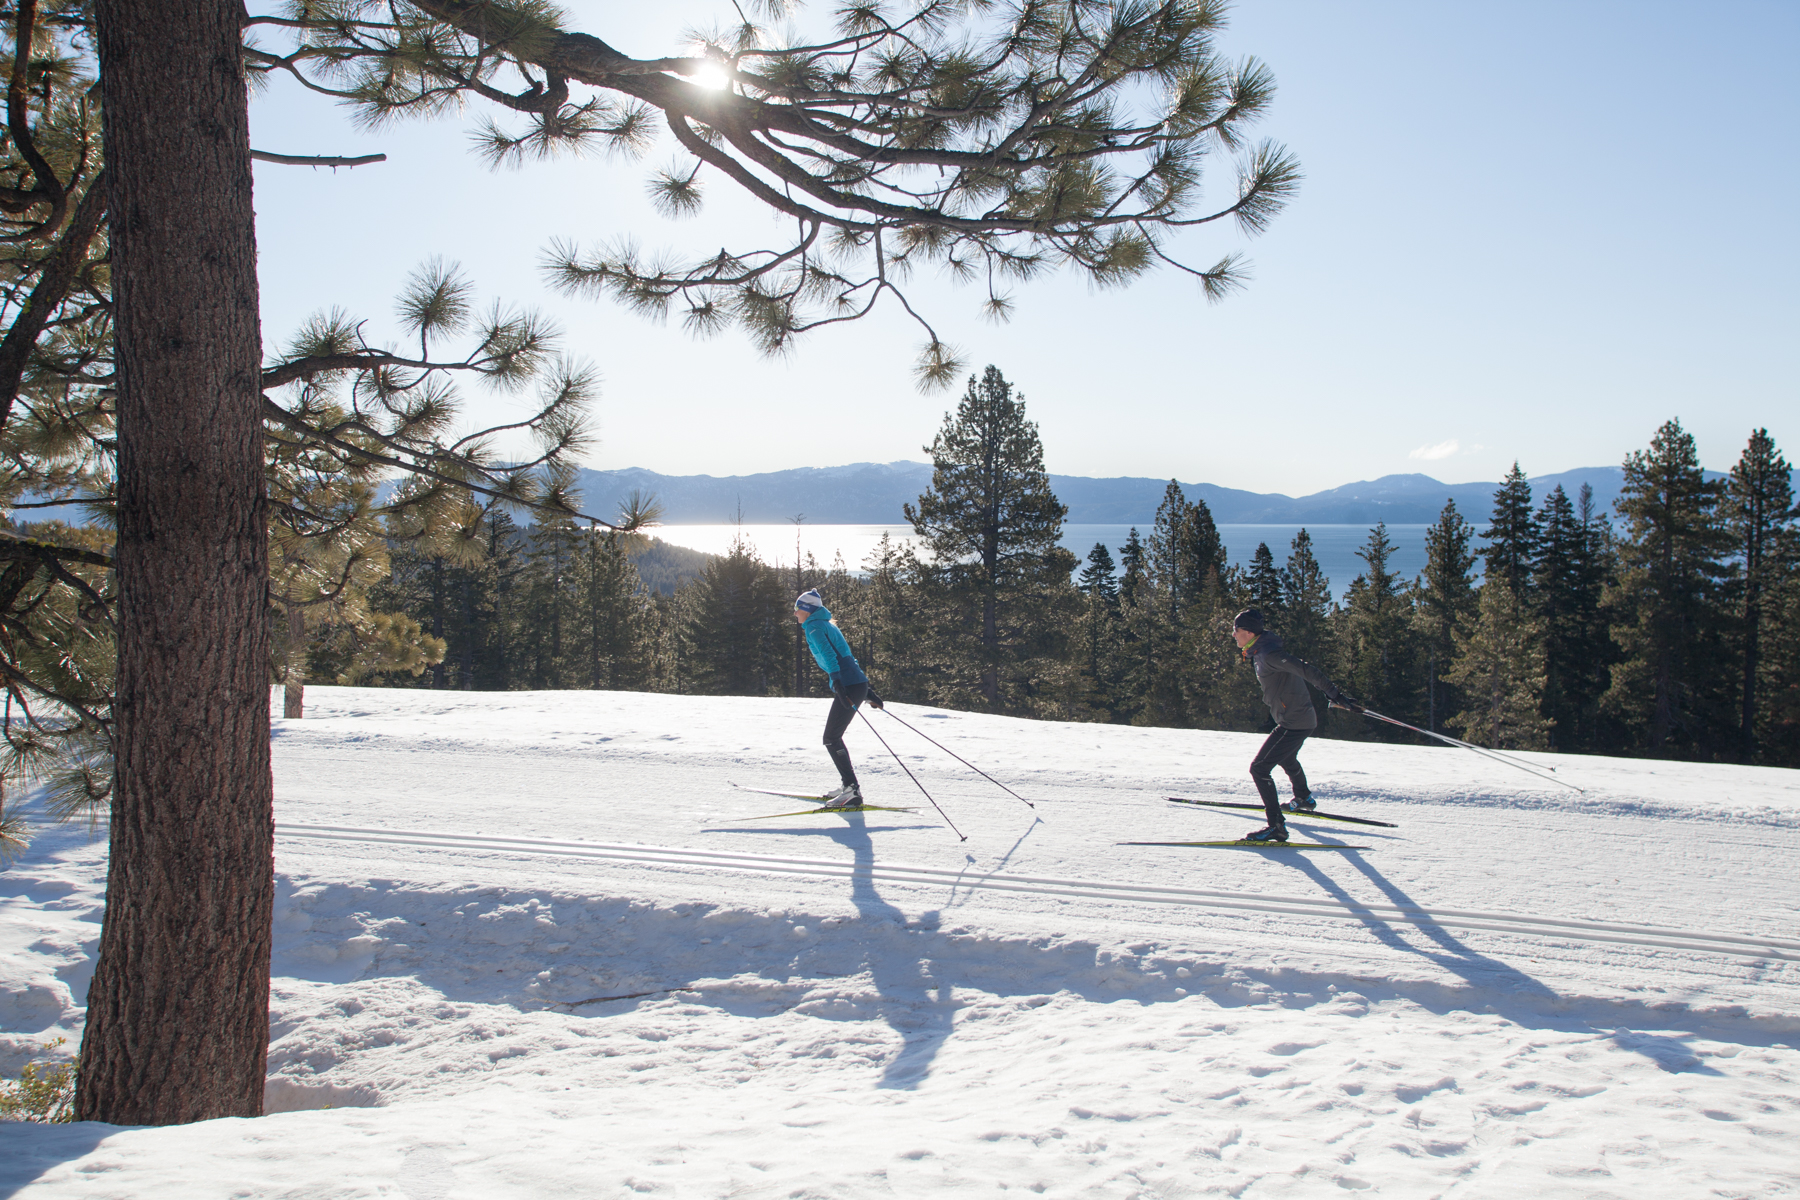 Two skiers with view of Lake Tahoe